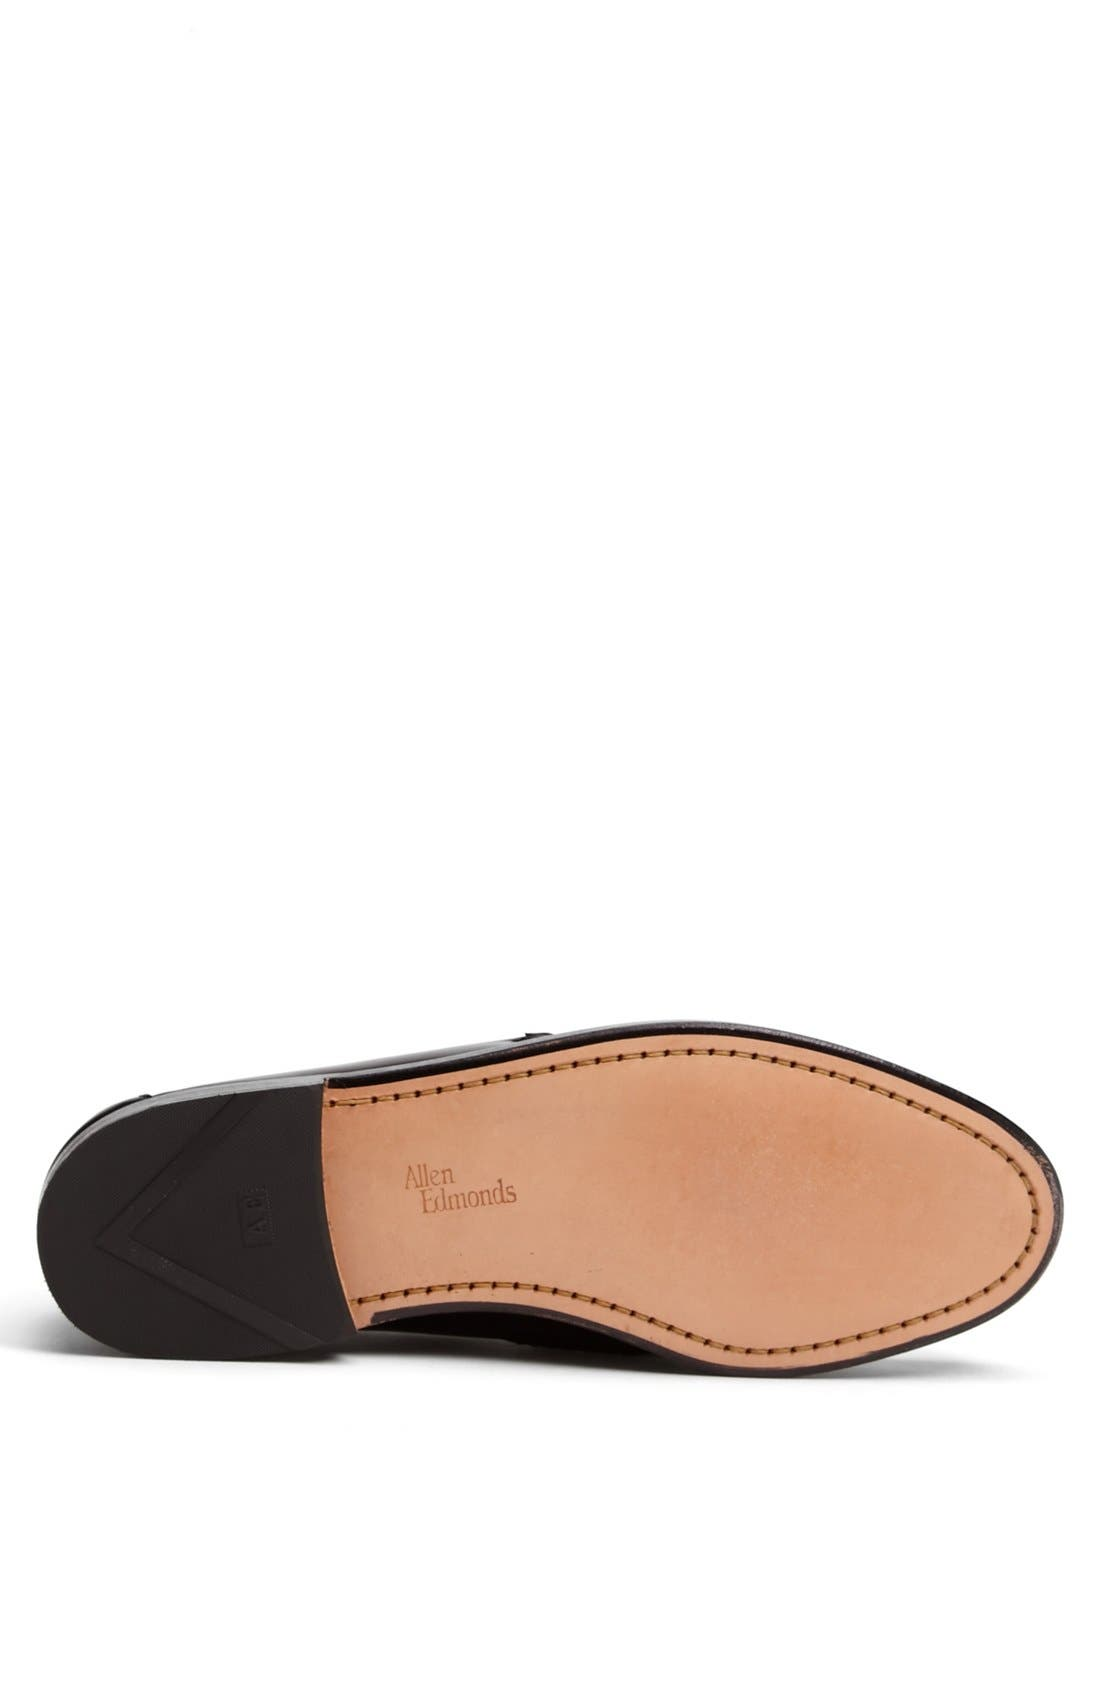 Alternate Image 4  - Allen Edmonds 'Walden' Loafer (Men)